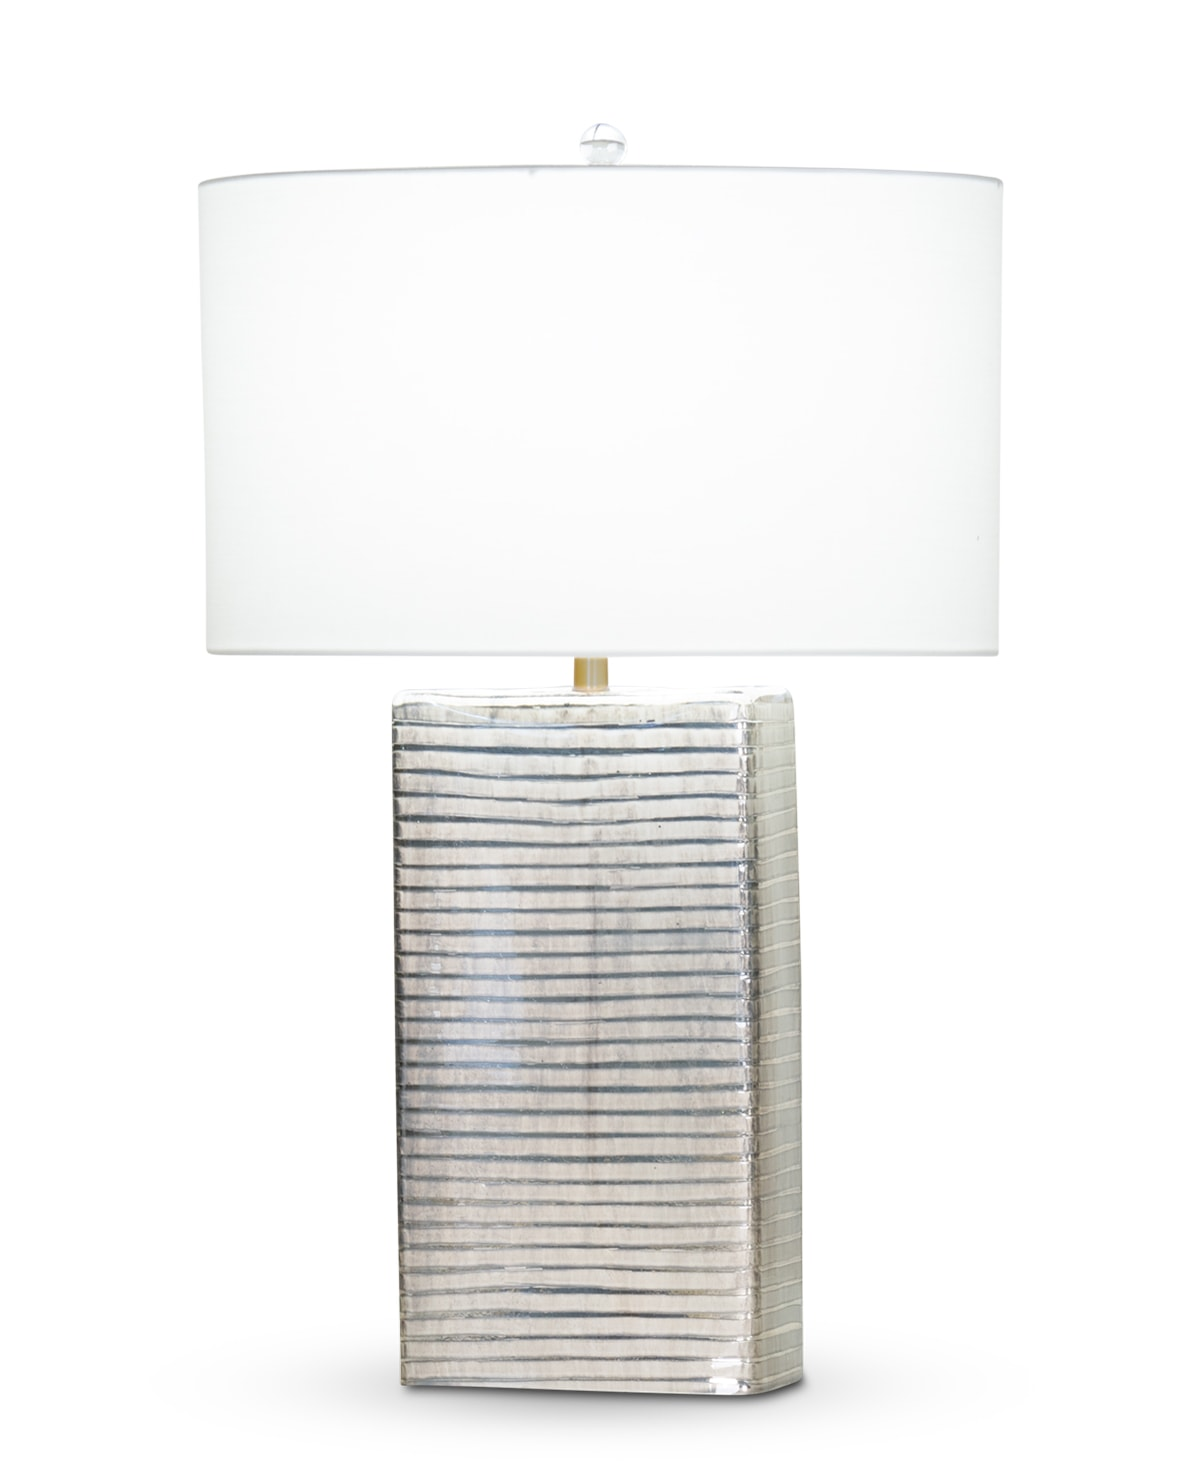 FlowDecor Logan Table Lamp in mouth-blown glass with grey carved finish and off-white cotton oval shade (# 3870)